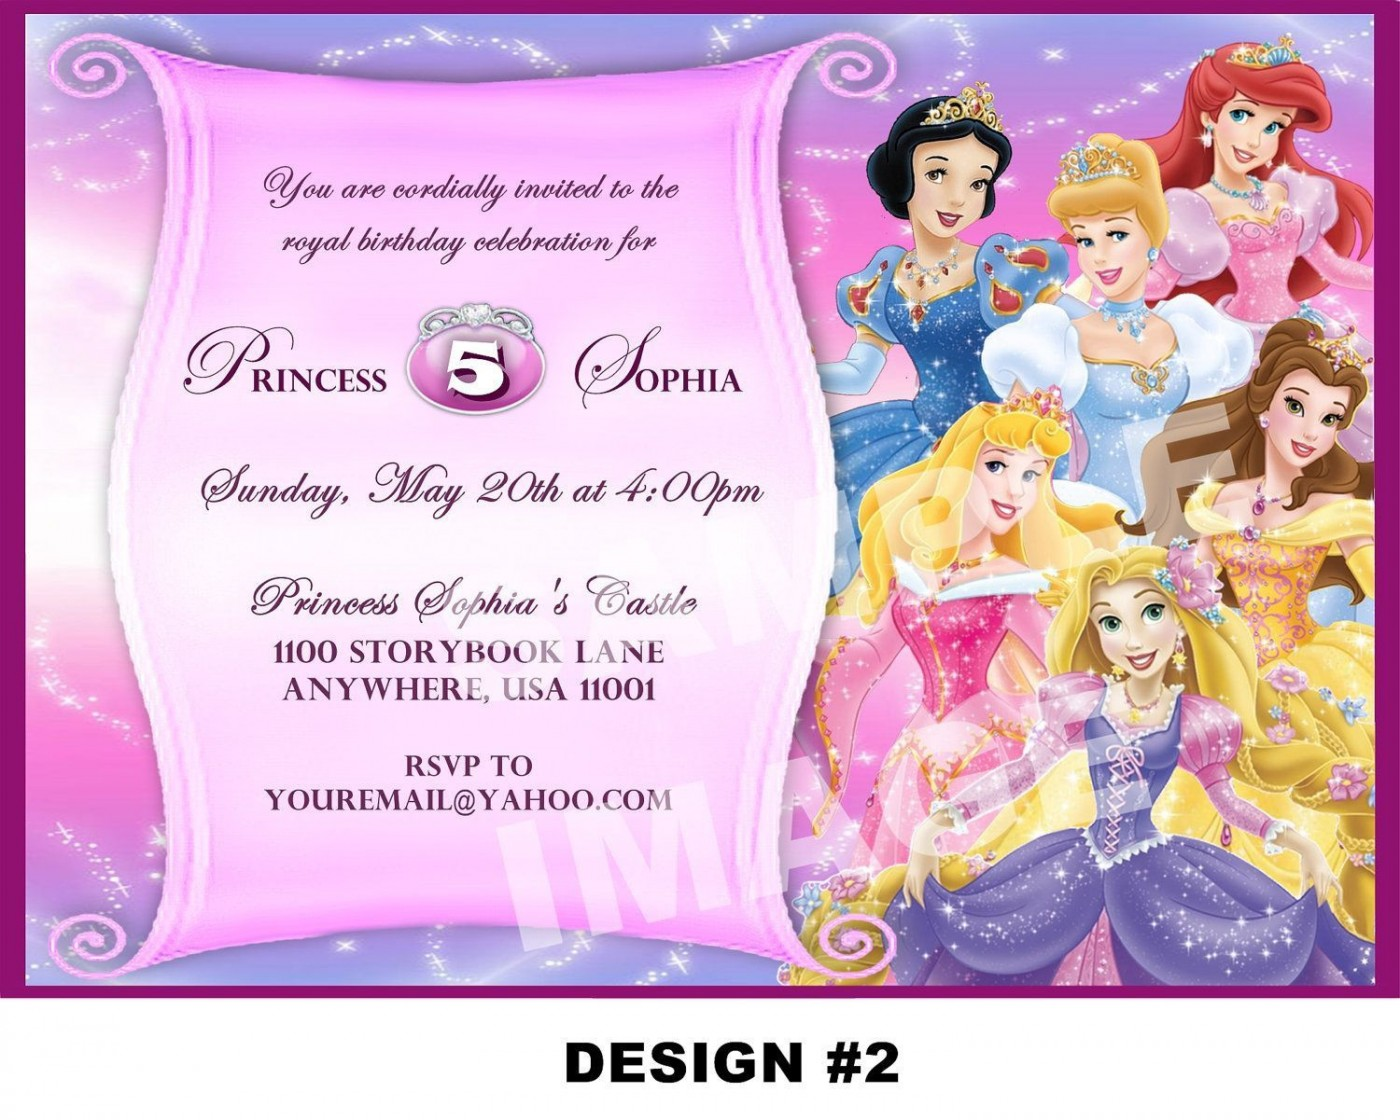 009 Unique Free Online Birthday Invitation Card Maker With Photo Inspiration  1st1400